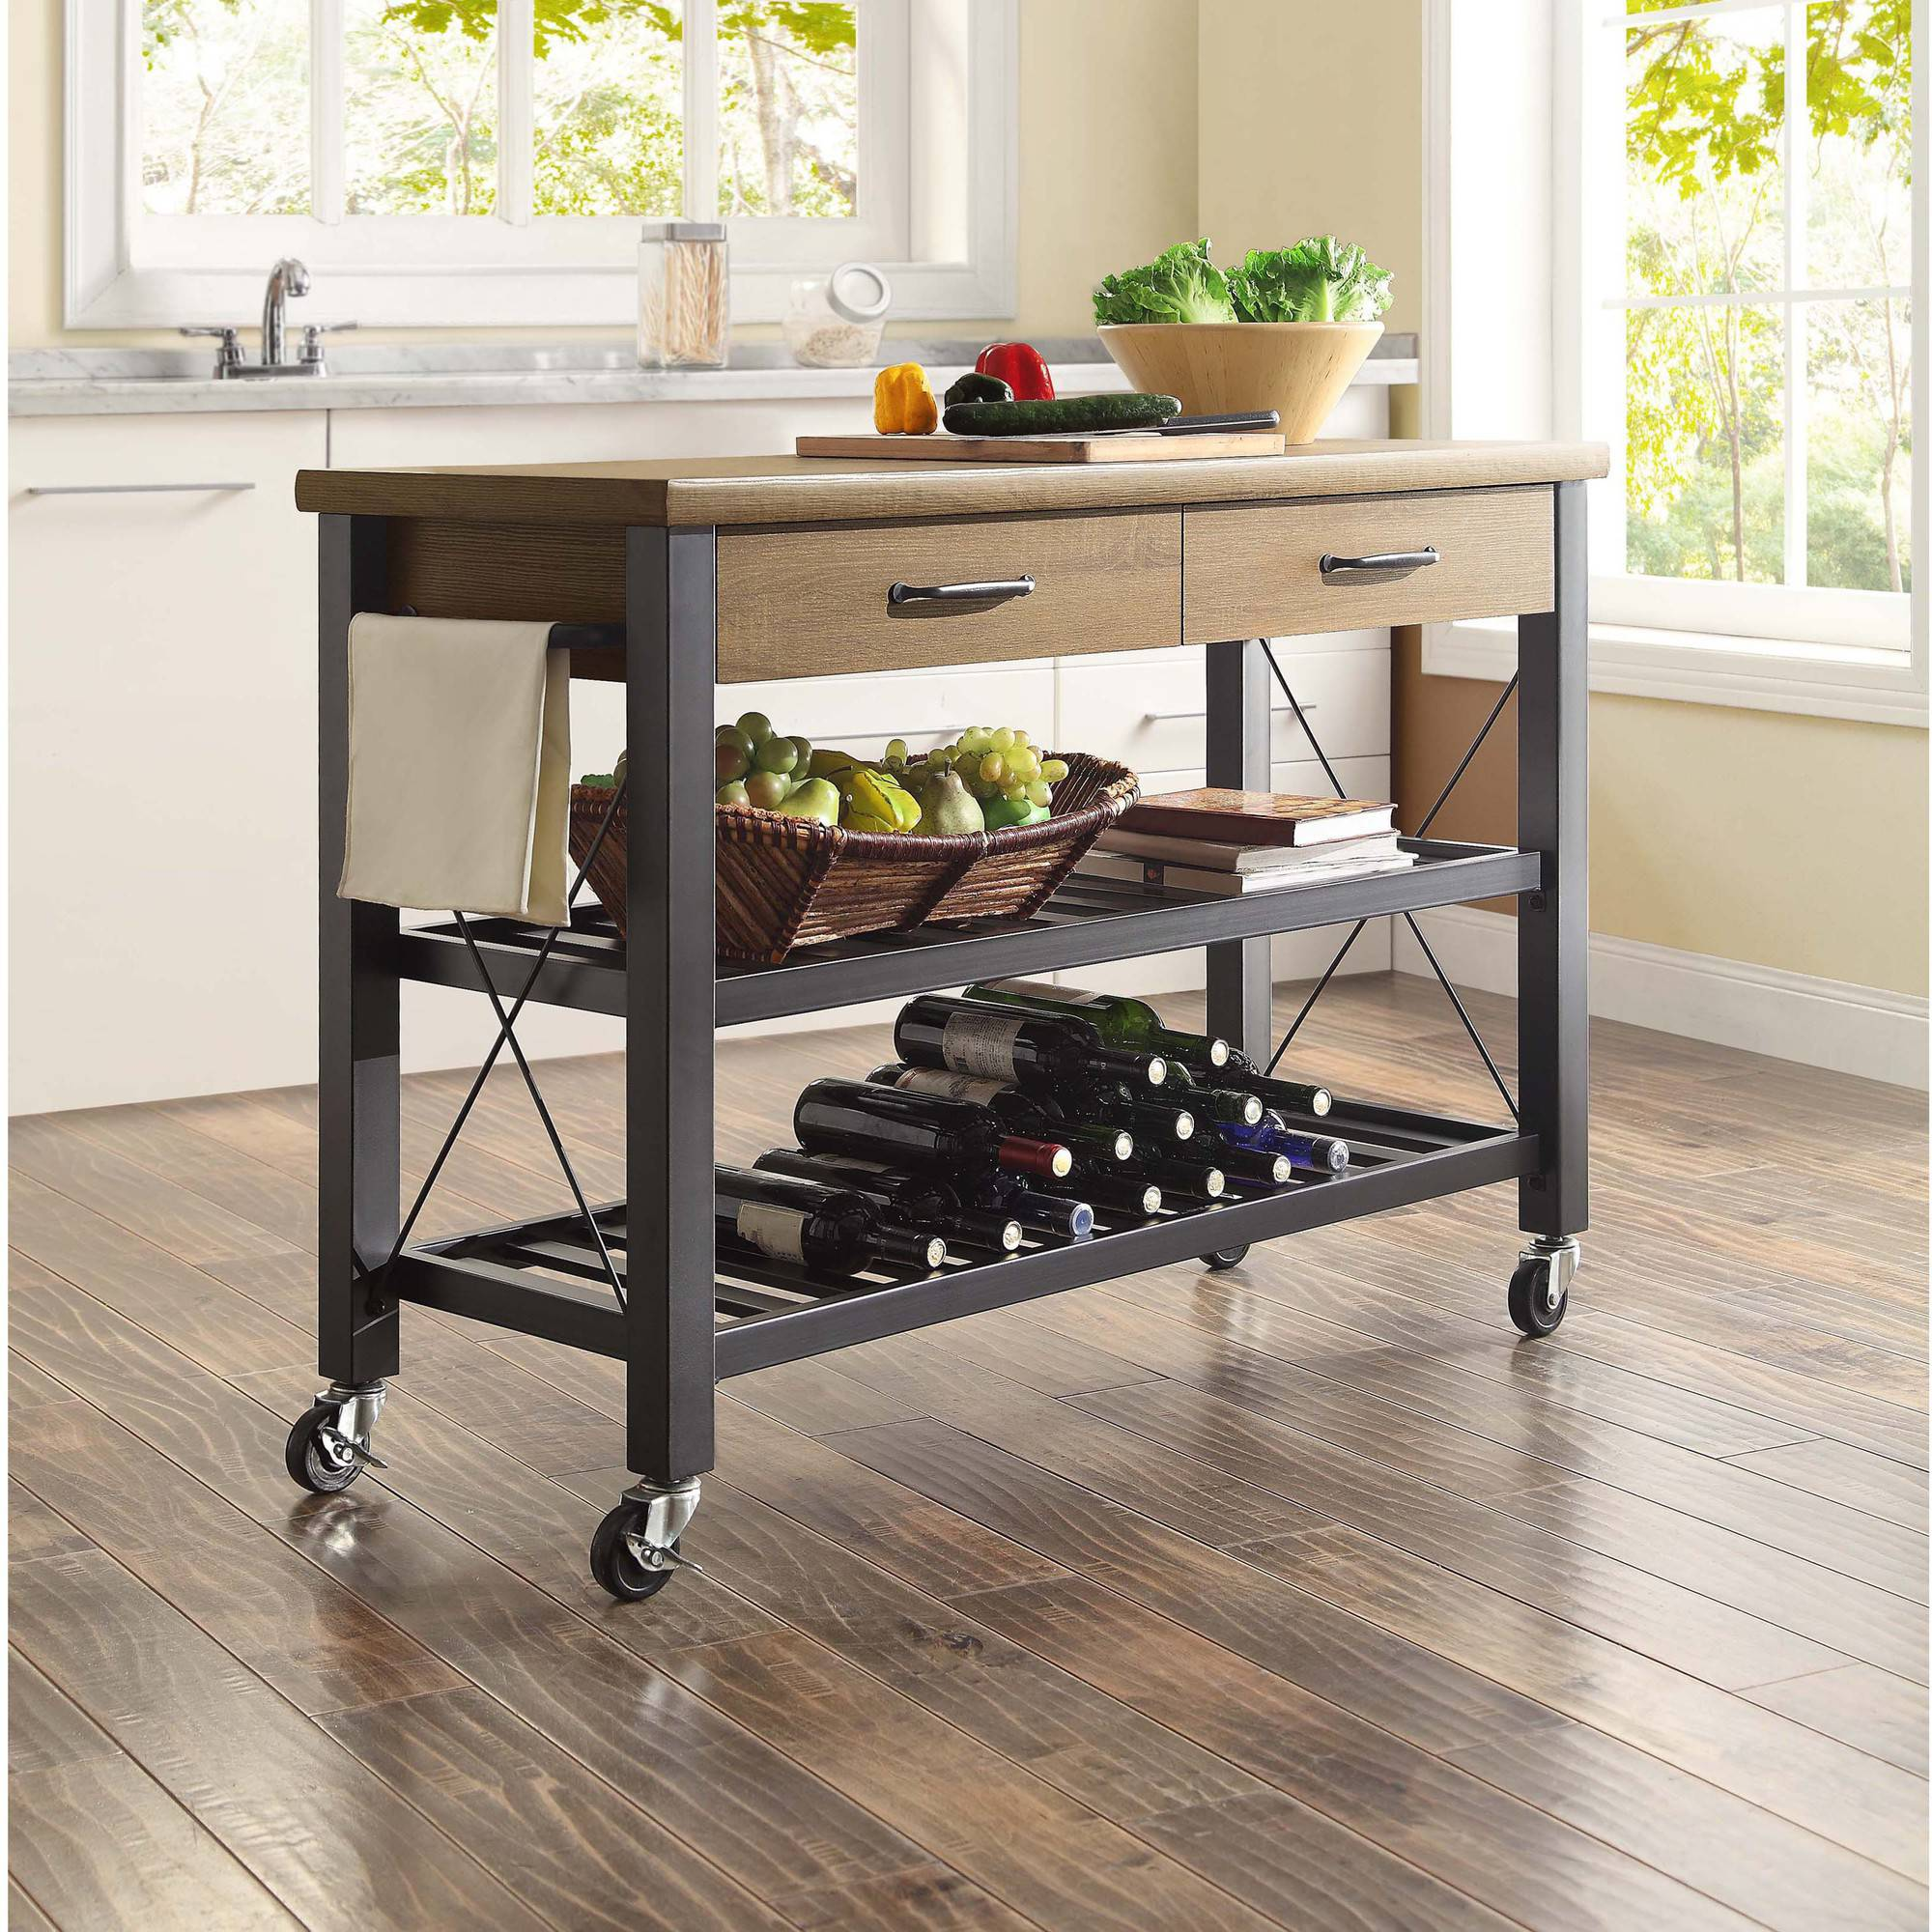 whalen santa fe rolling kitchen cart with metal shelves, rustic